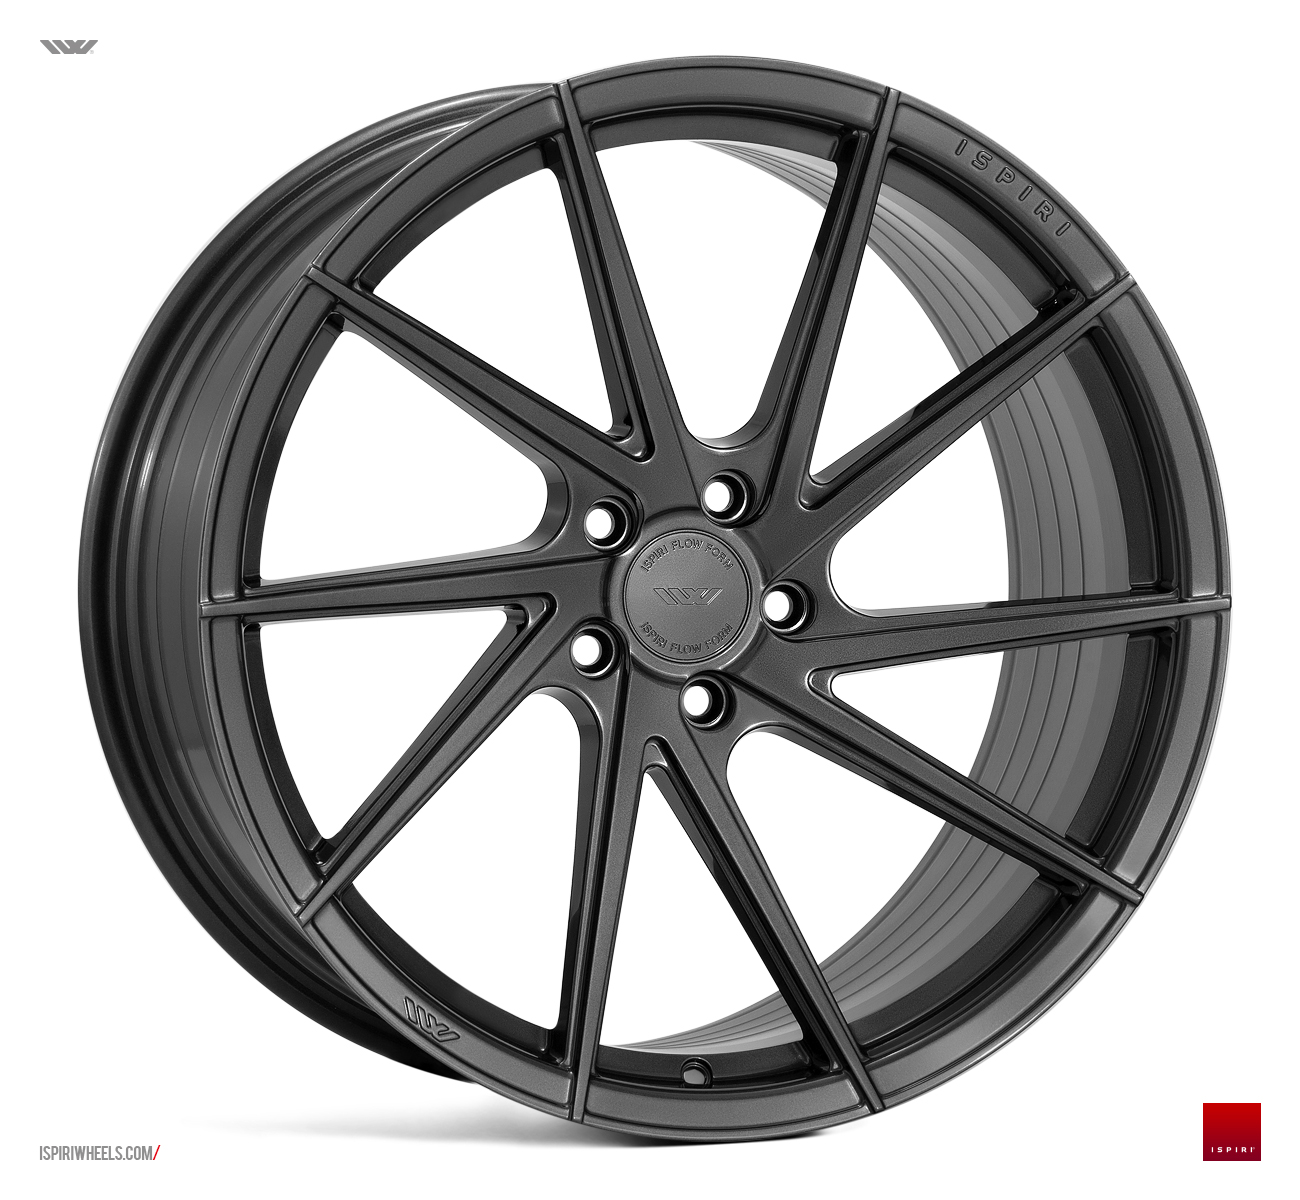 "NEW 20"" ISPIRI FFR1D MULTI-SPOKE DIRECTIONAL ALLOYS IN CARBON GRAPHITE, DEEPER CONCAVE 10"" REAR"